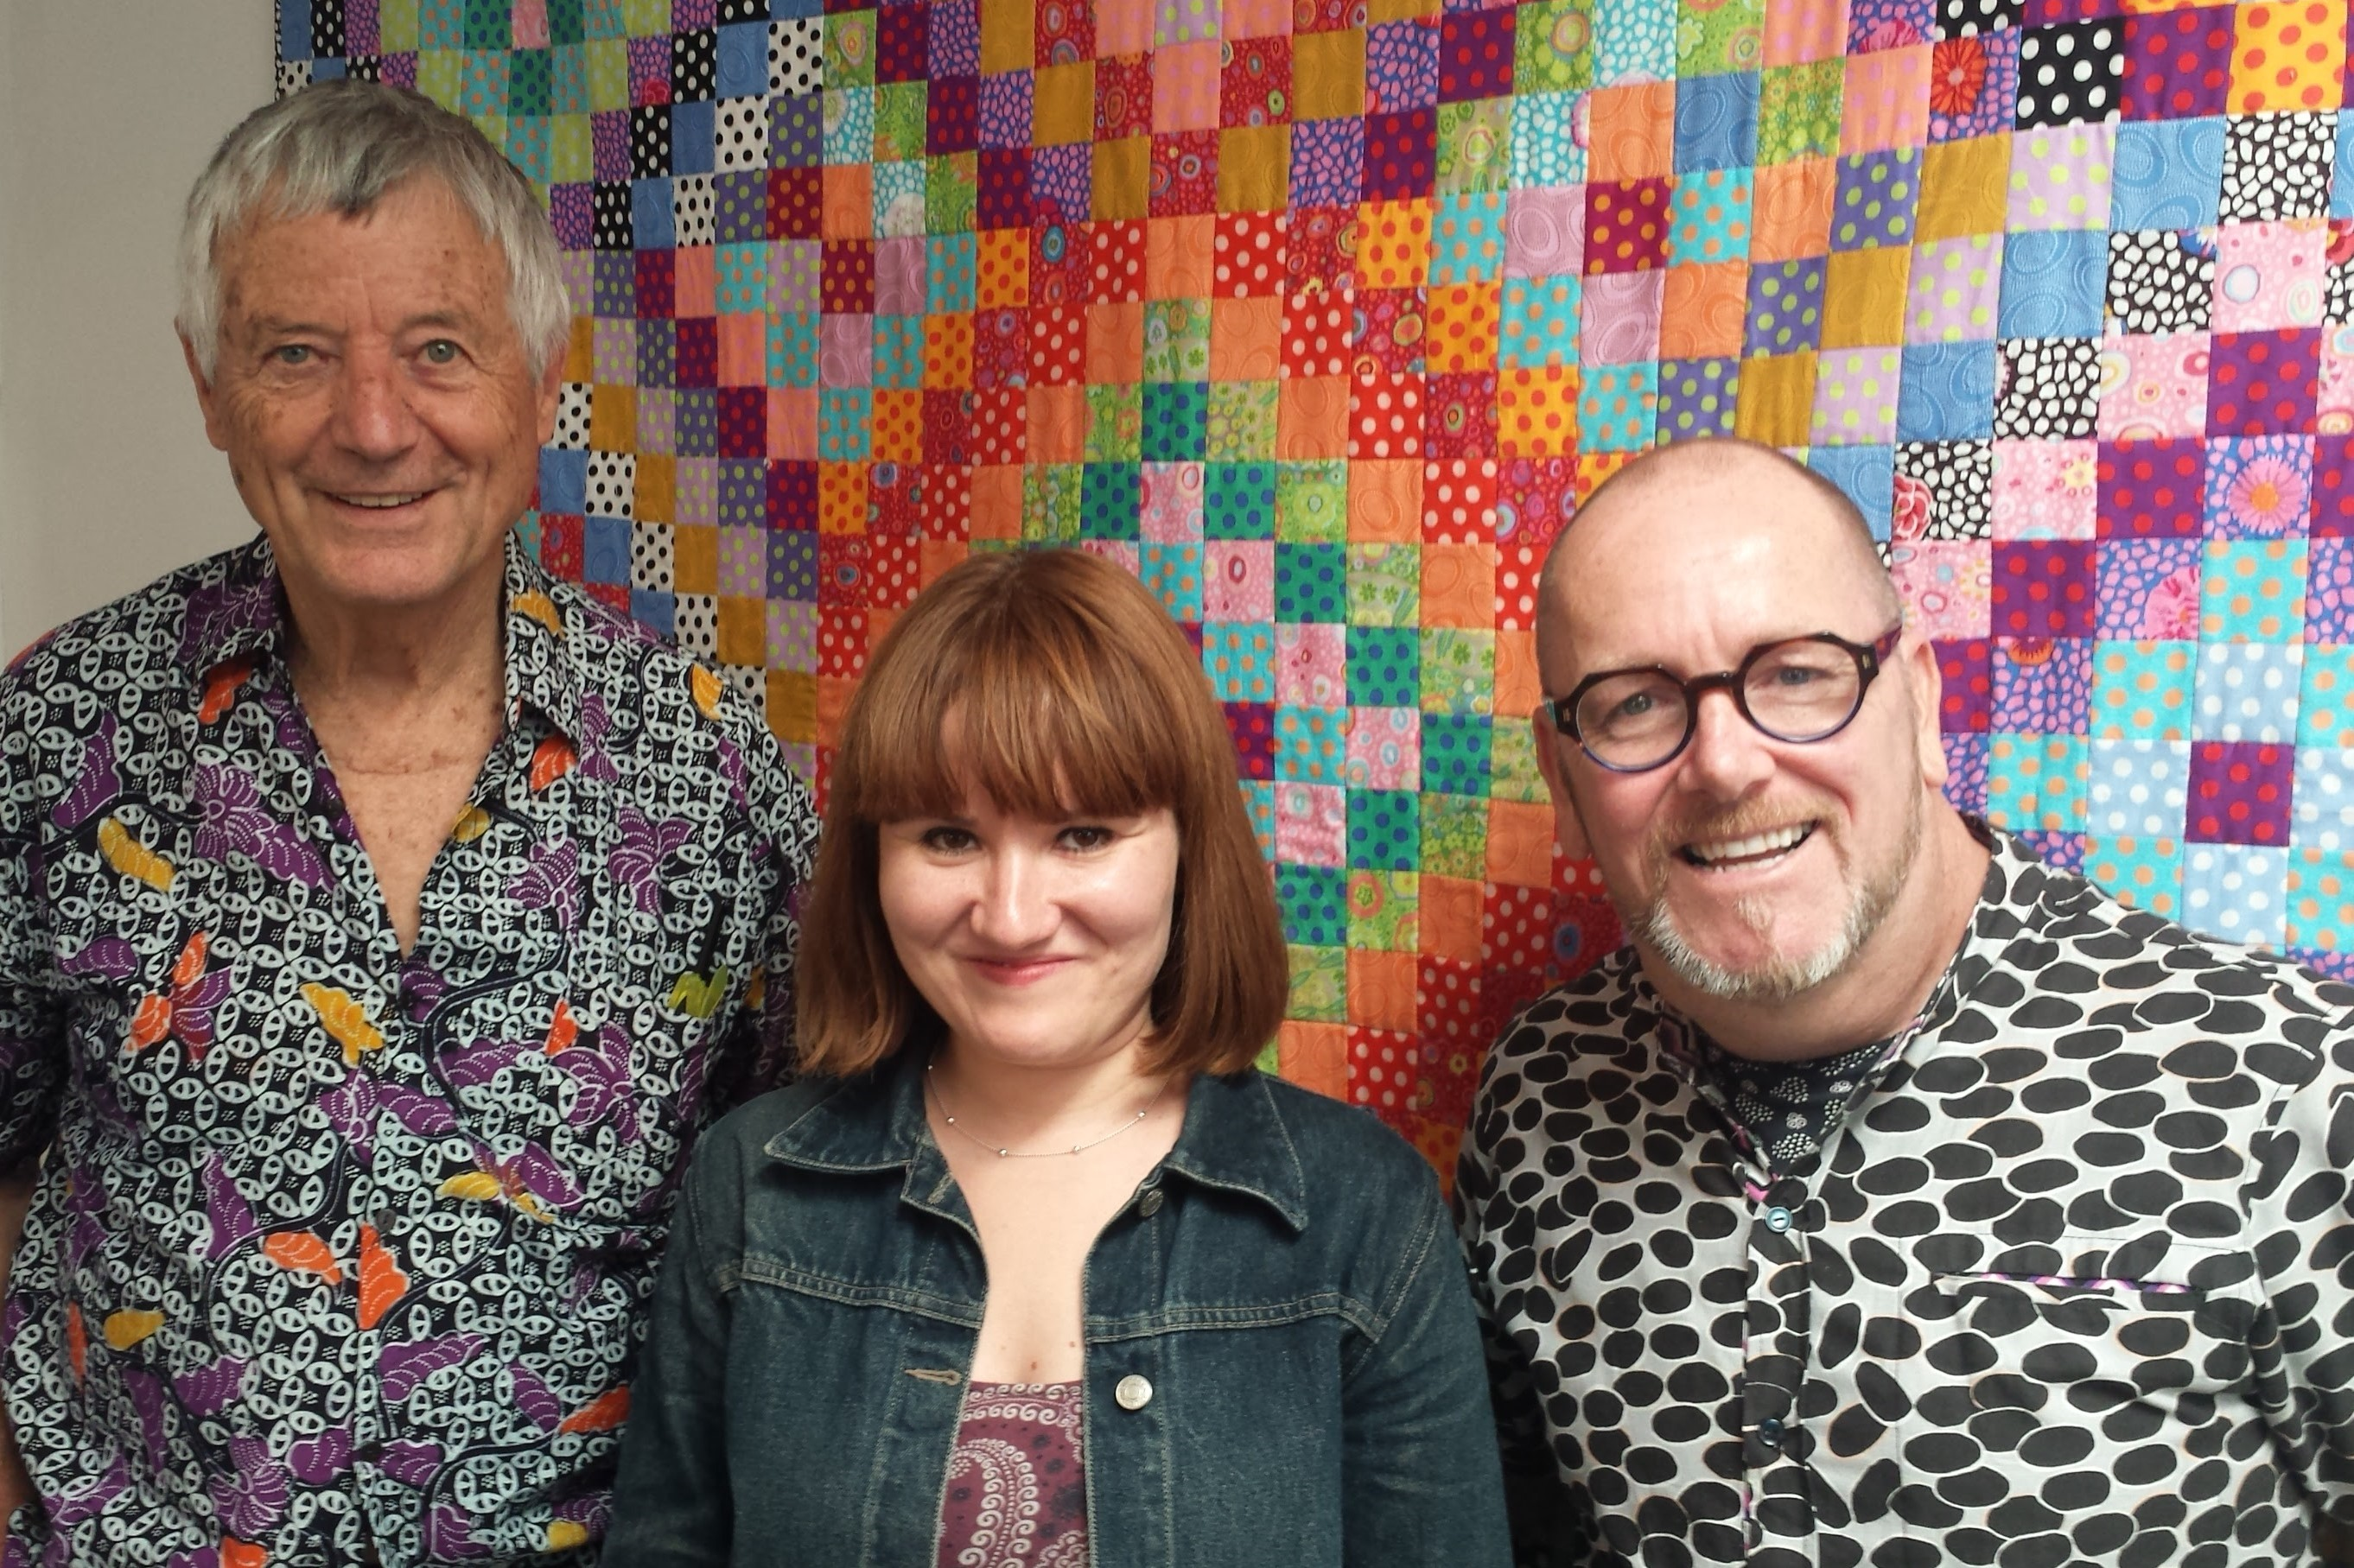 Creating a quilt with help from Kaffe Fassett and Brandon Mably